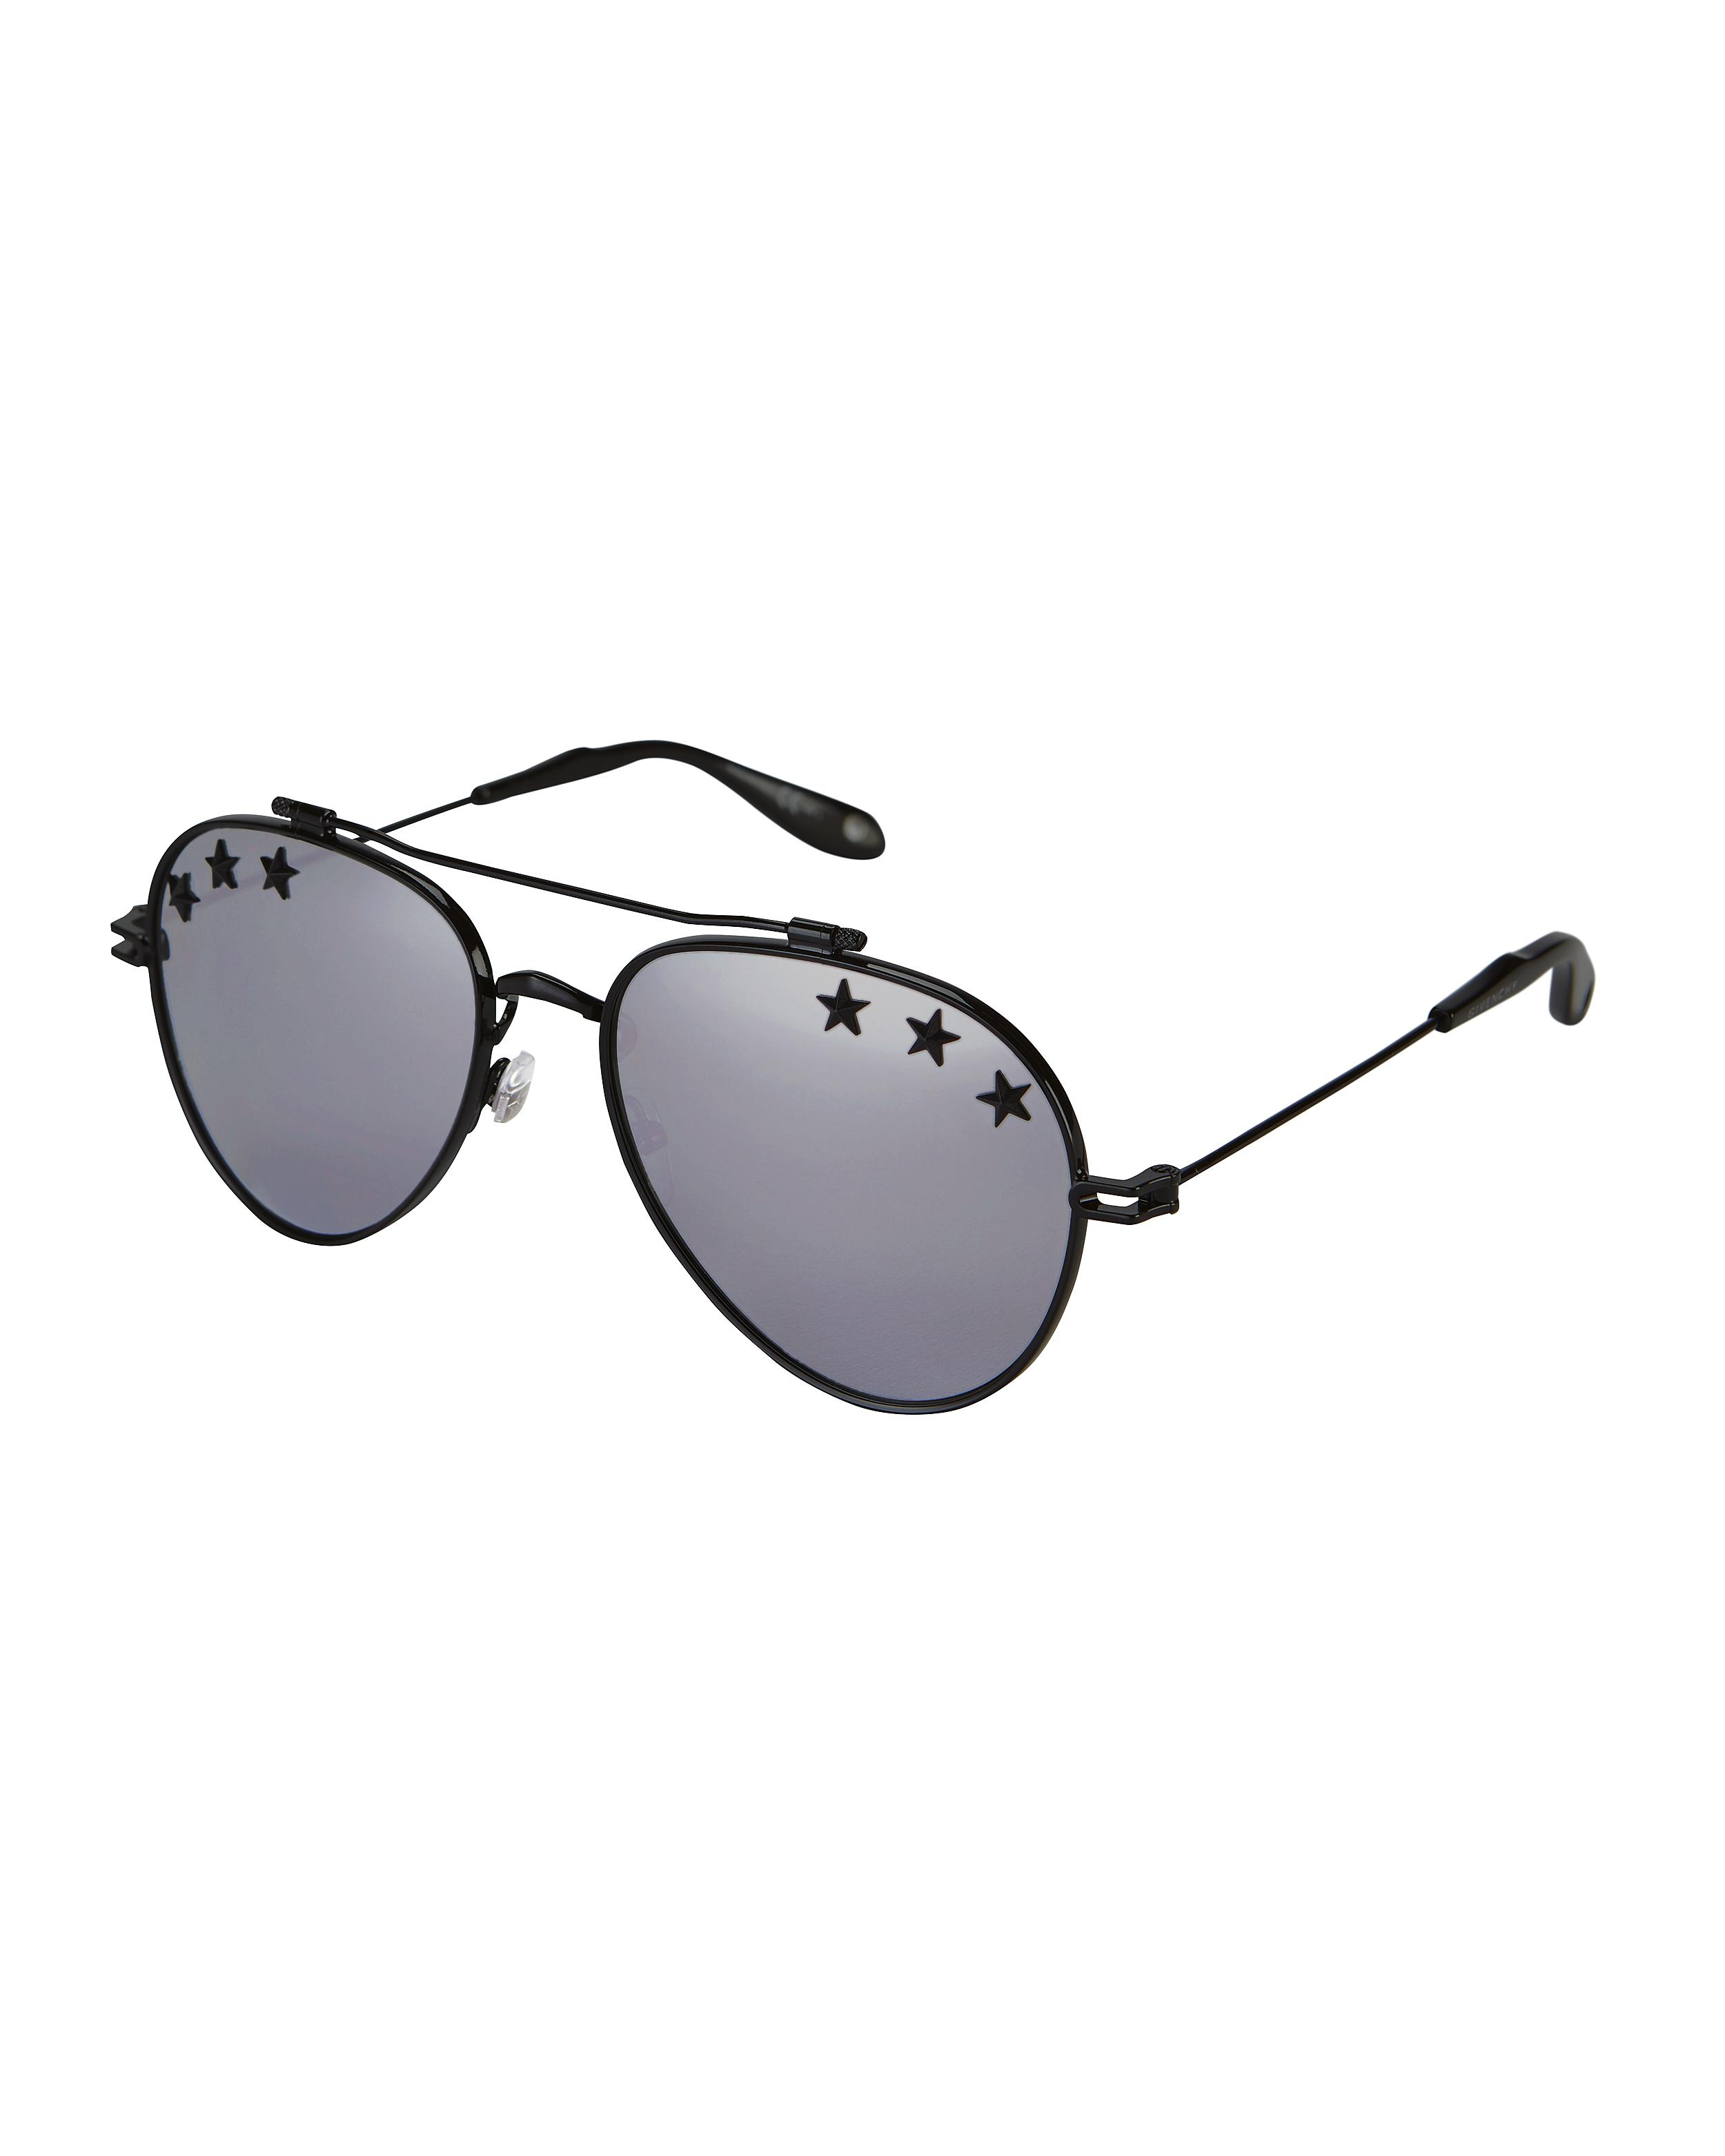 e2983b6d95a9 Gallery. Previously sold at: INTERMIX · Women's Mirrored Sunglasses Women's  Givenchy Star